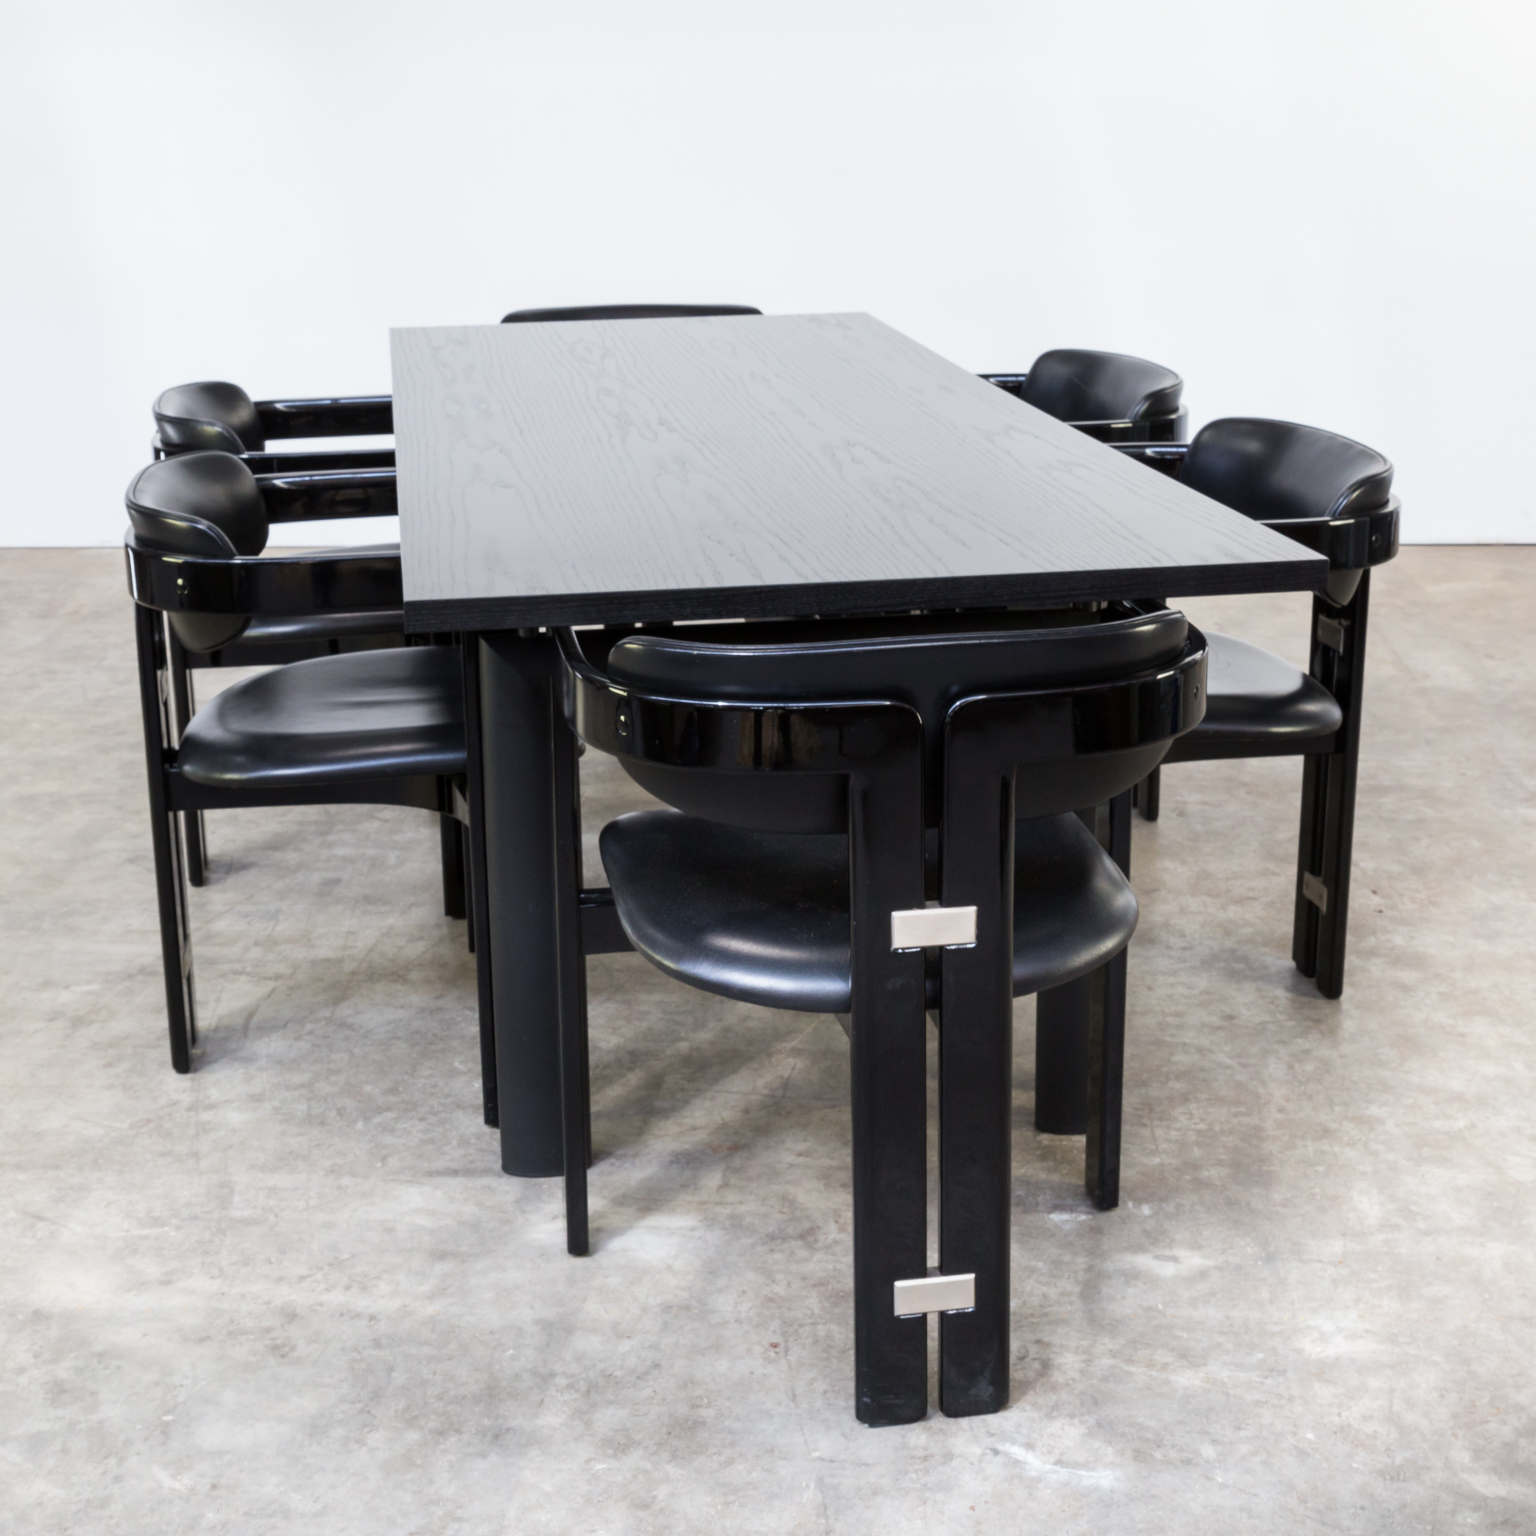 0724057TE Cassina Lc6n Le Corbusier Dining Table Eettafel Retro